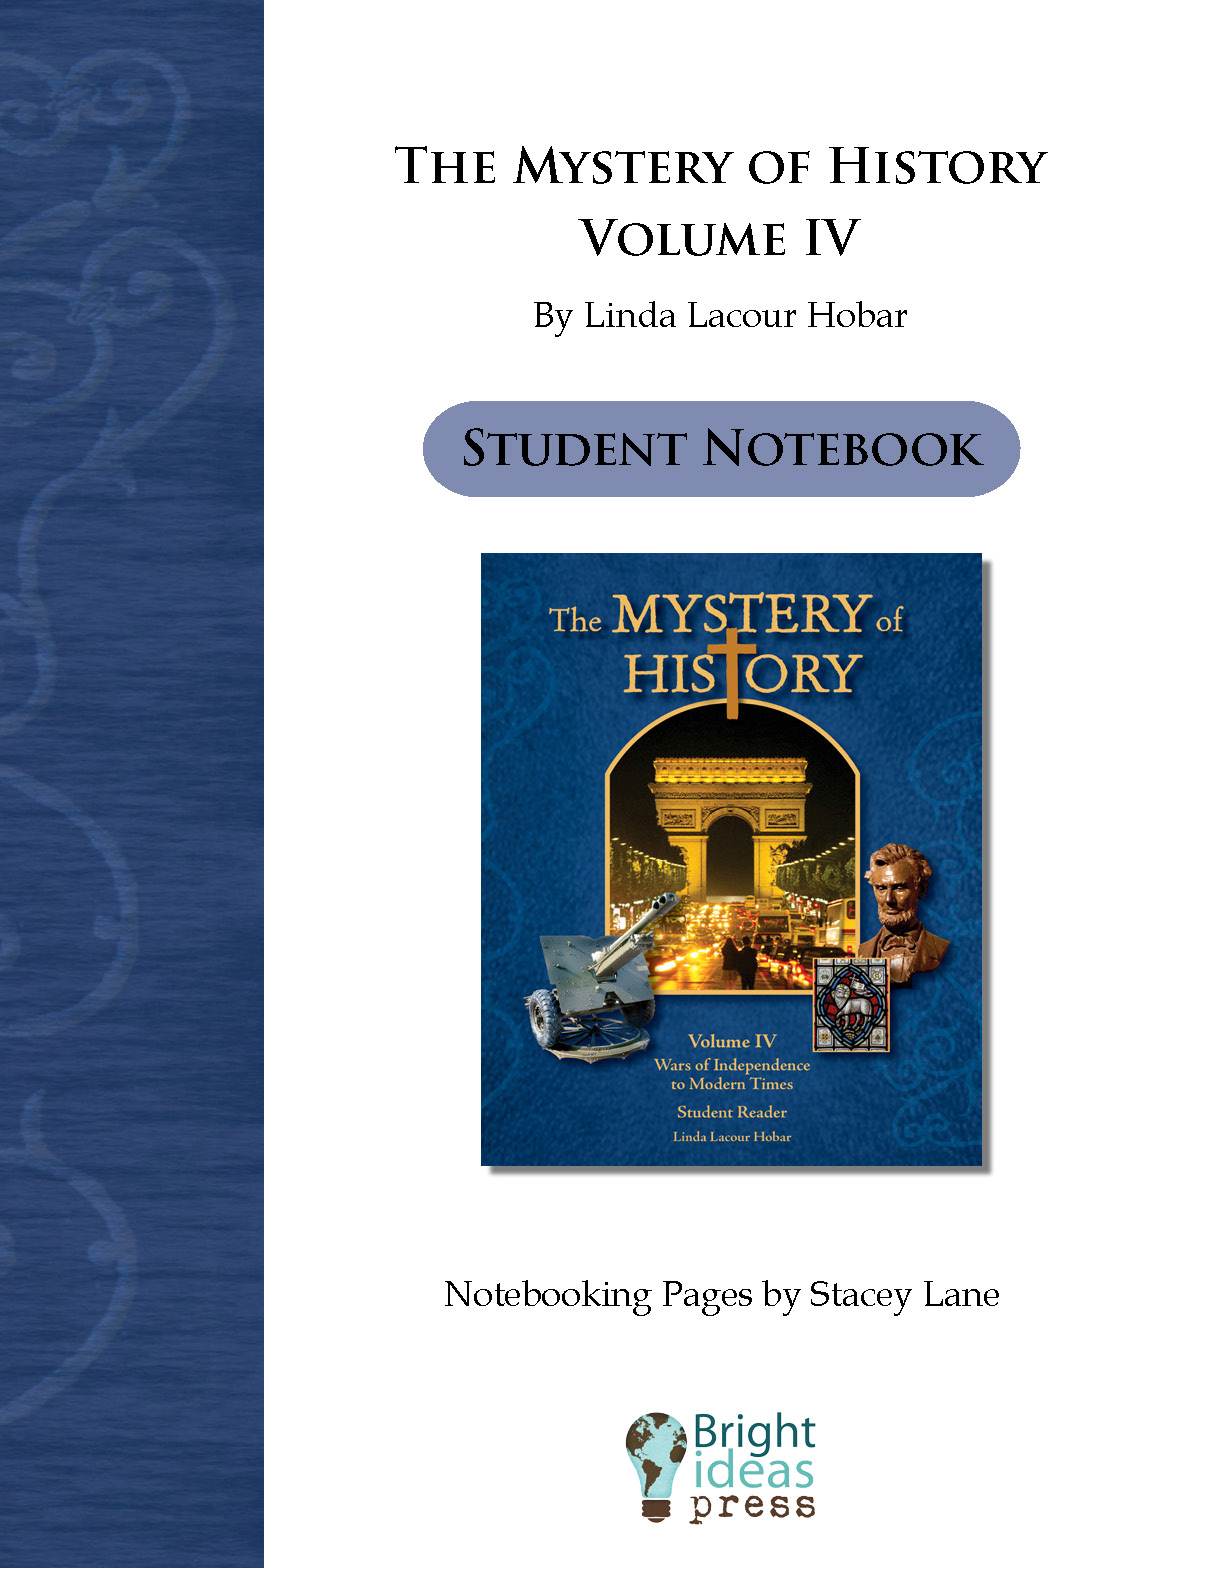 The Mystery of History Volume IV Notebooking Pages by Bright Ideas Press